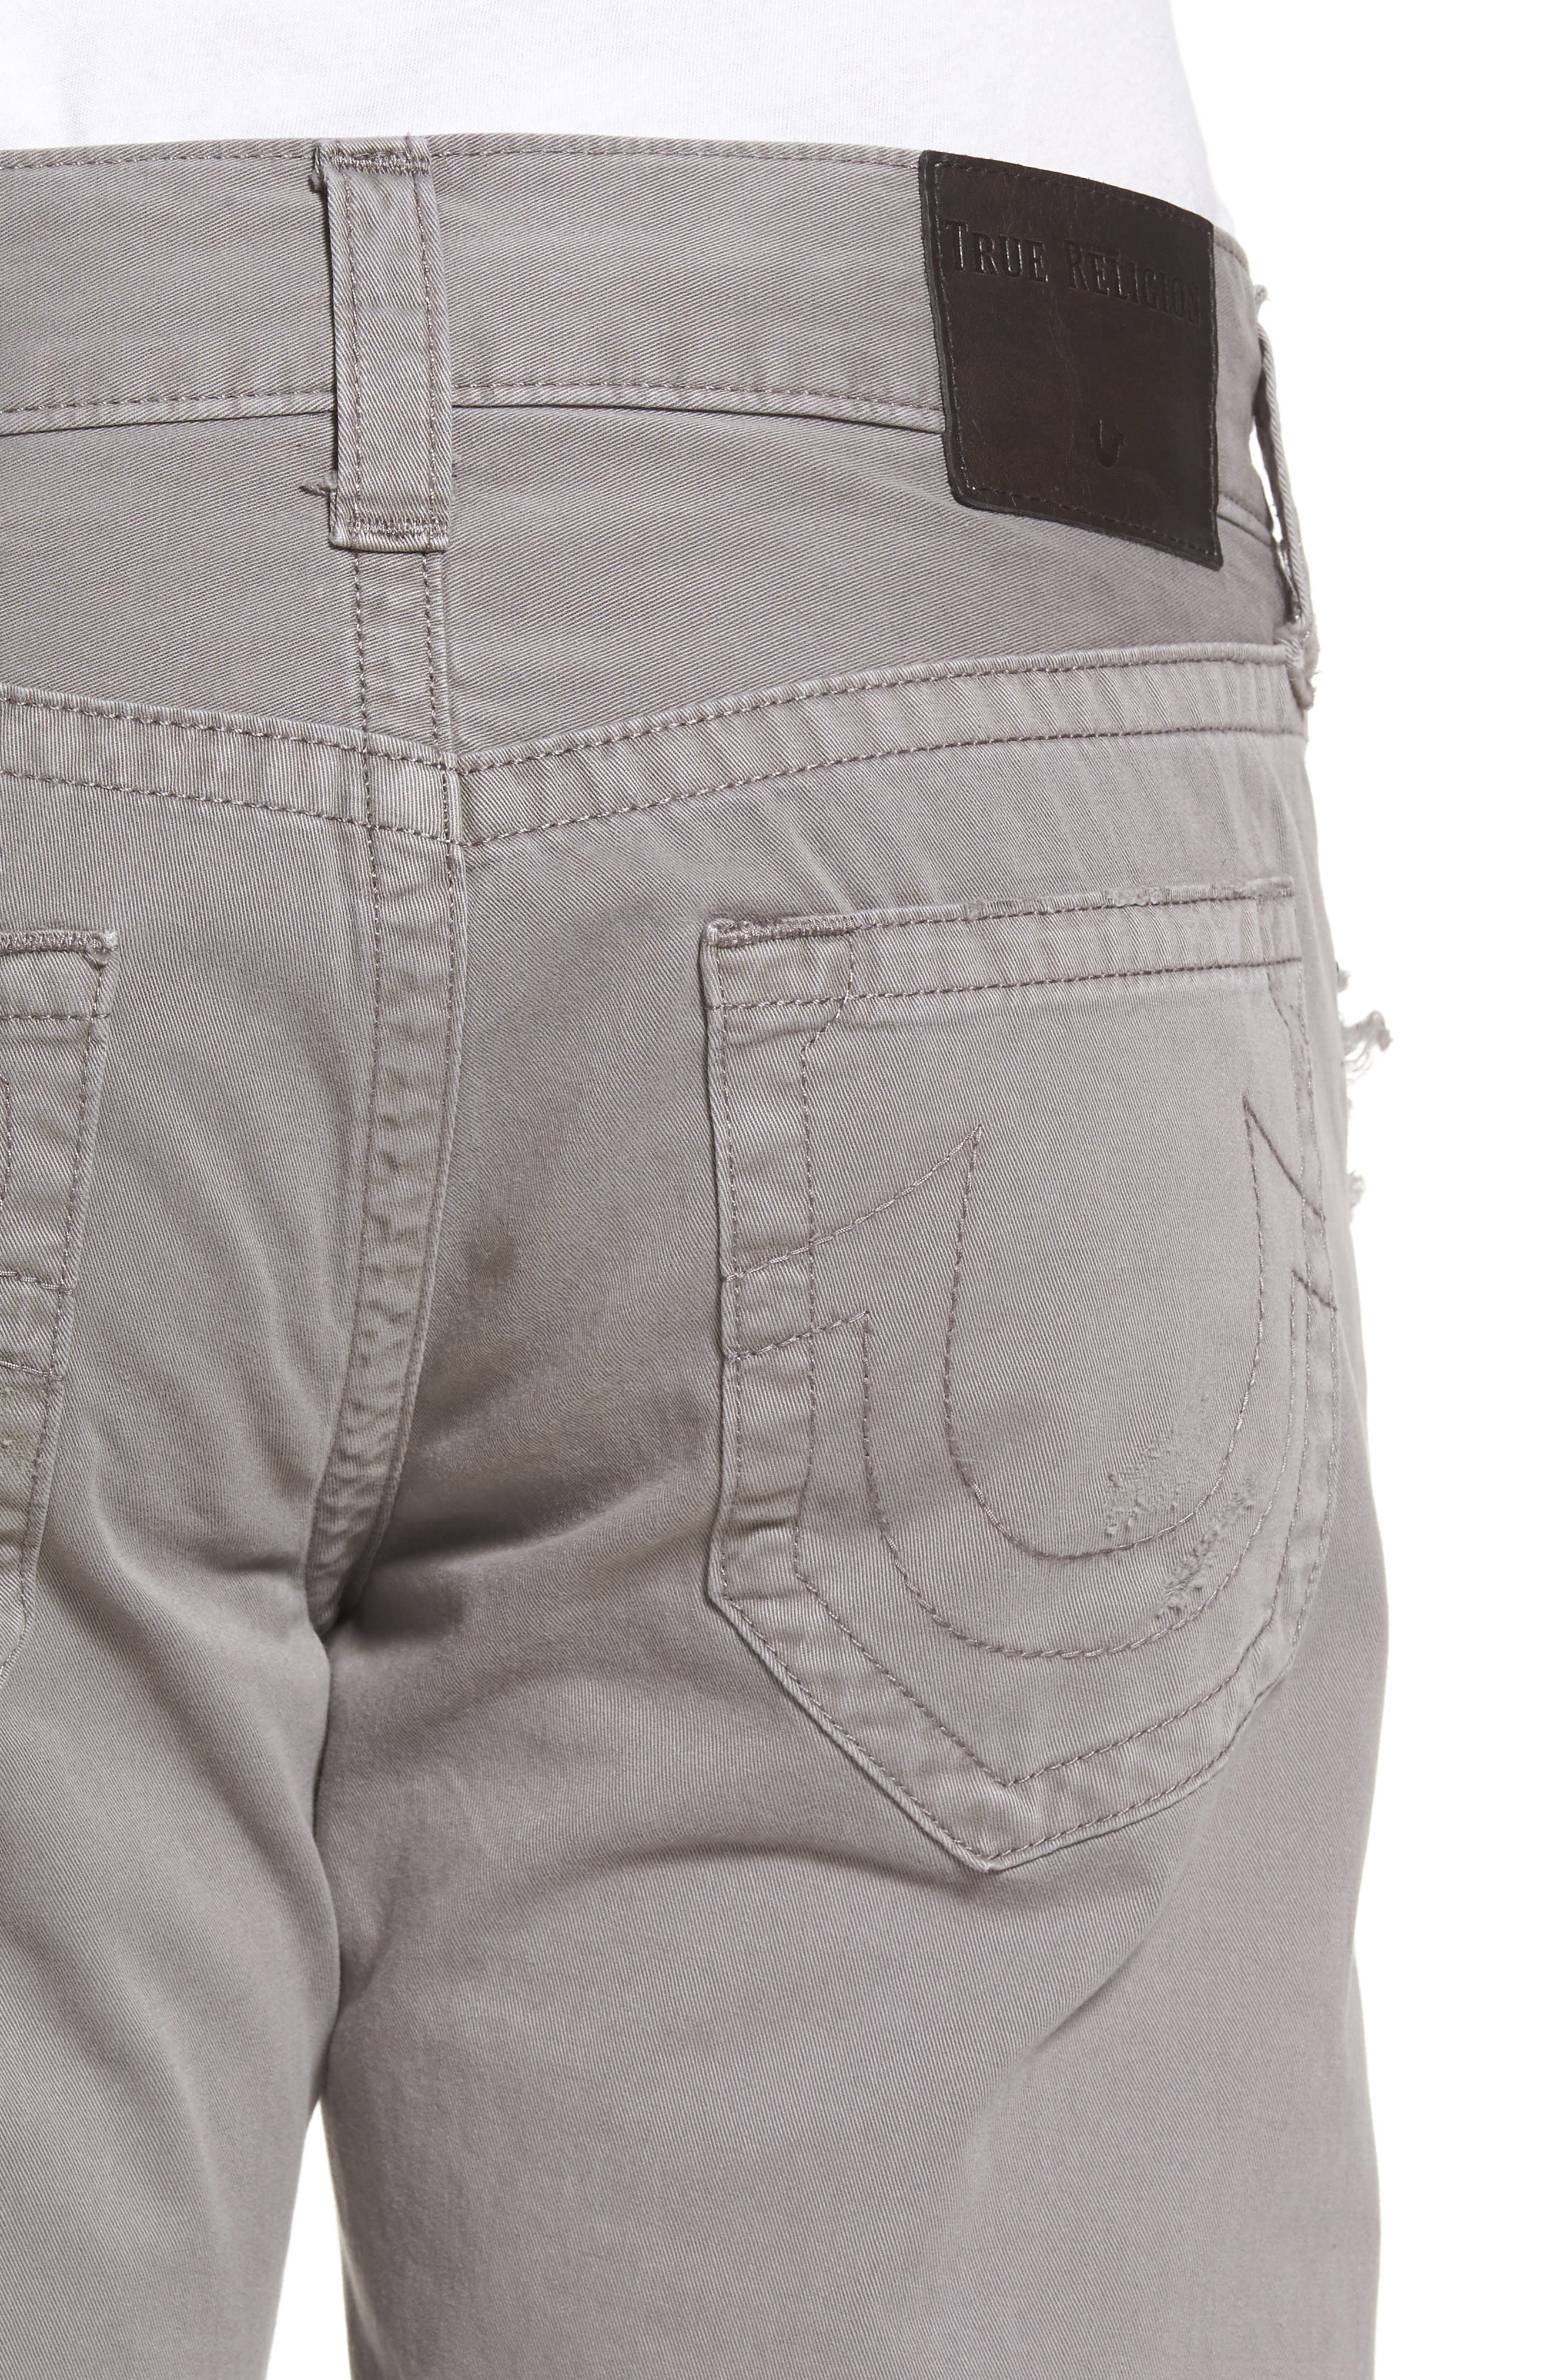 Geno Straight Fit Jeans,                             Alternate thumbnail 4, color,                             Steel Grey